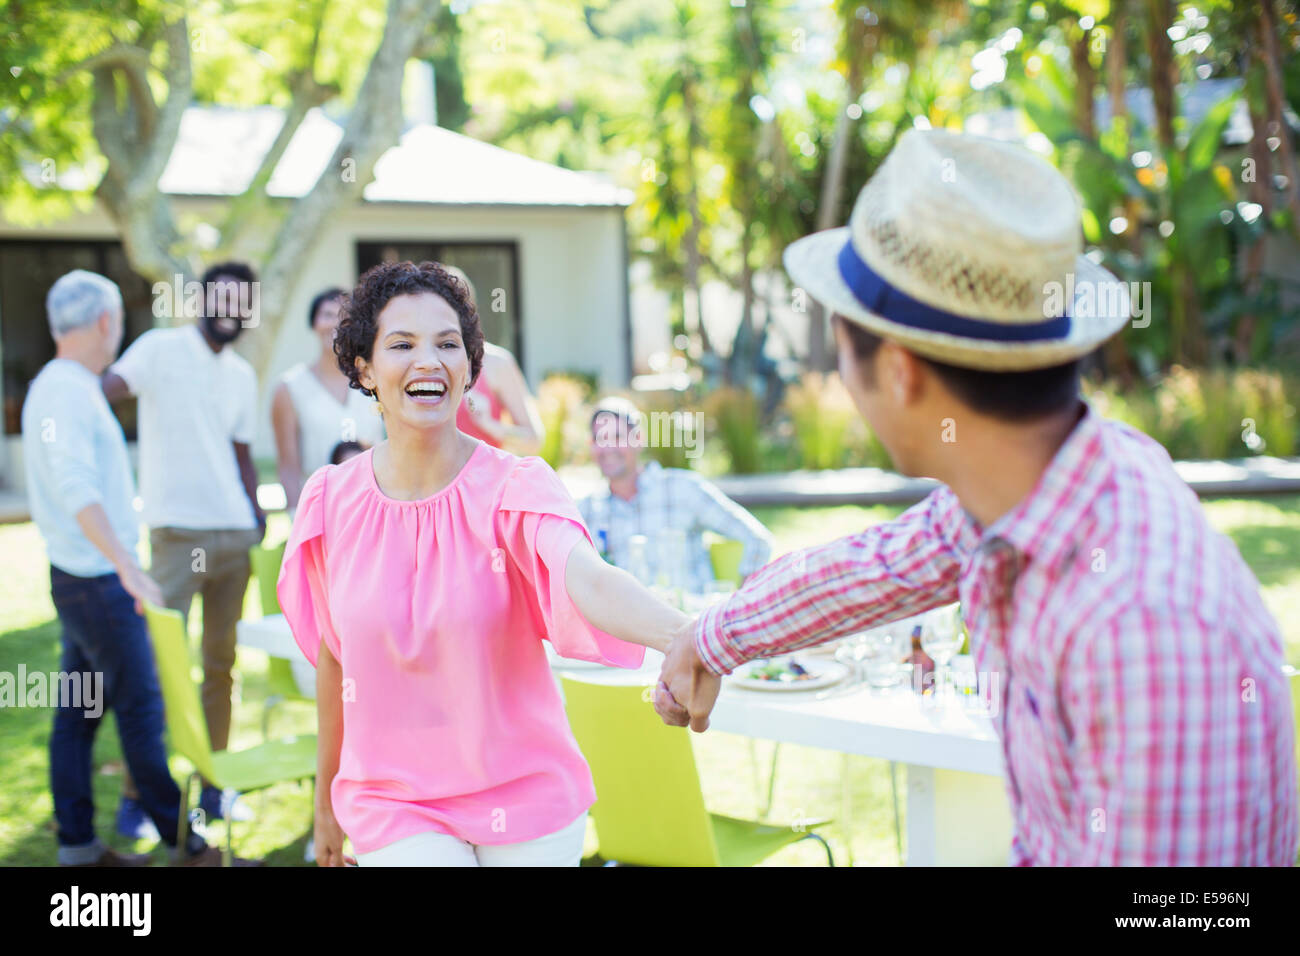 Couple dancing at party Photo Stock